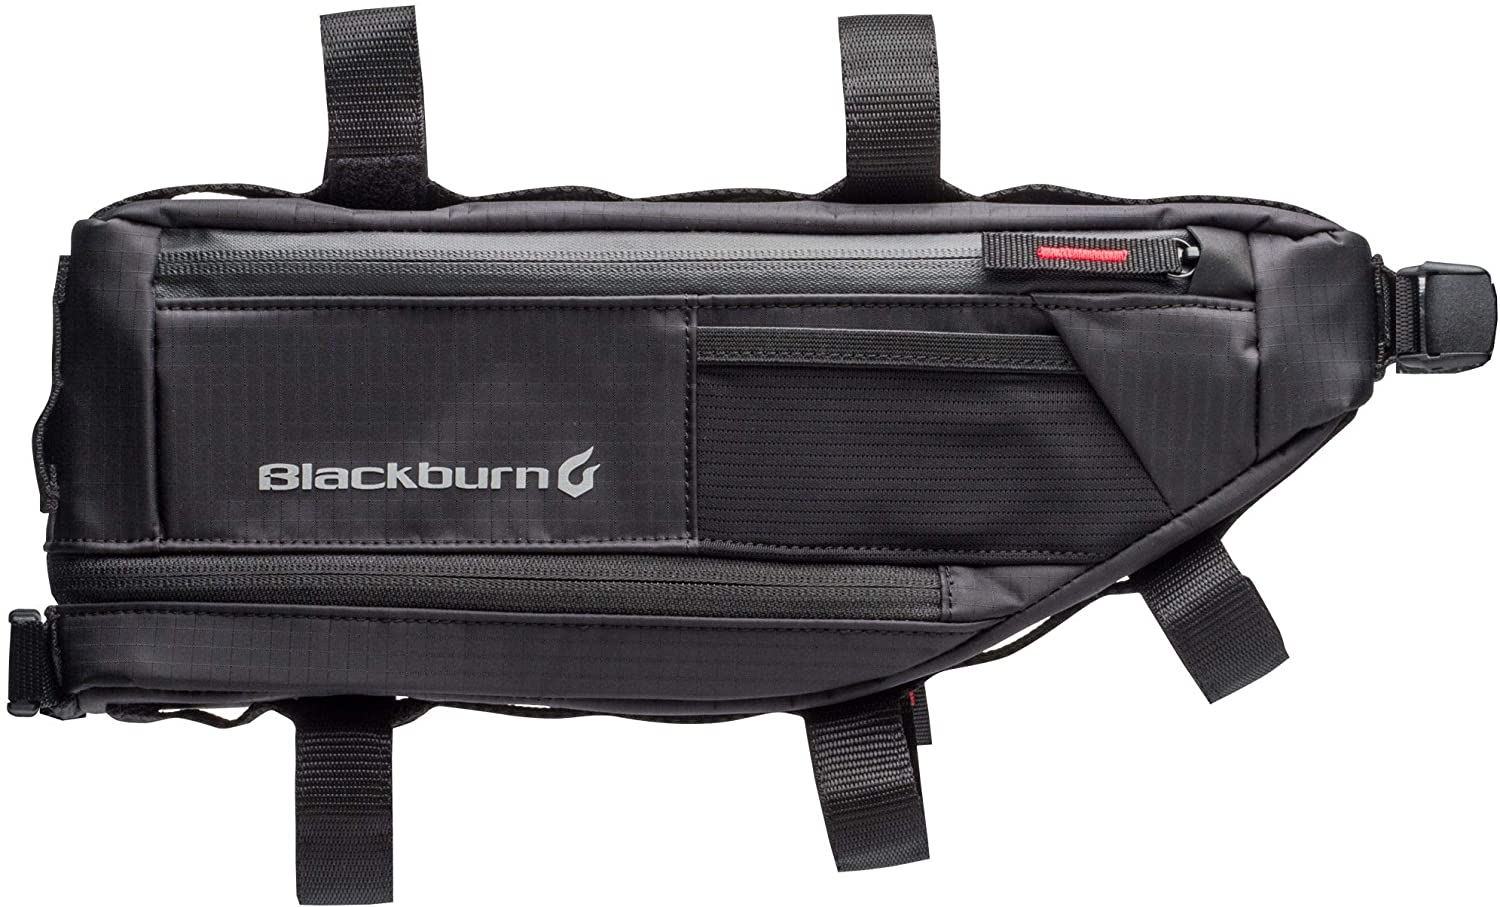 blackburn outpost bike frame bag isolated on white background